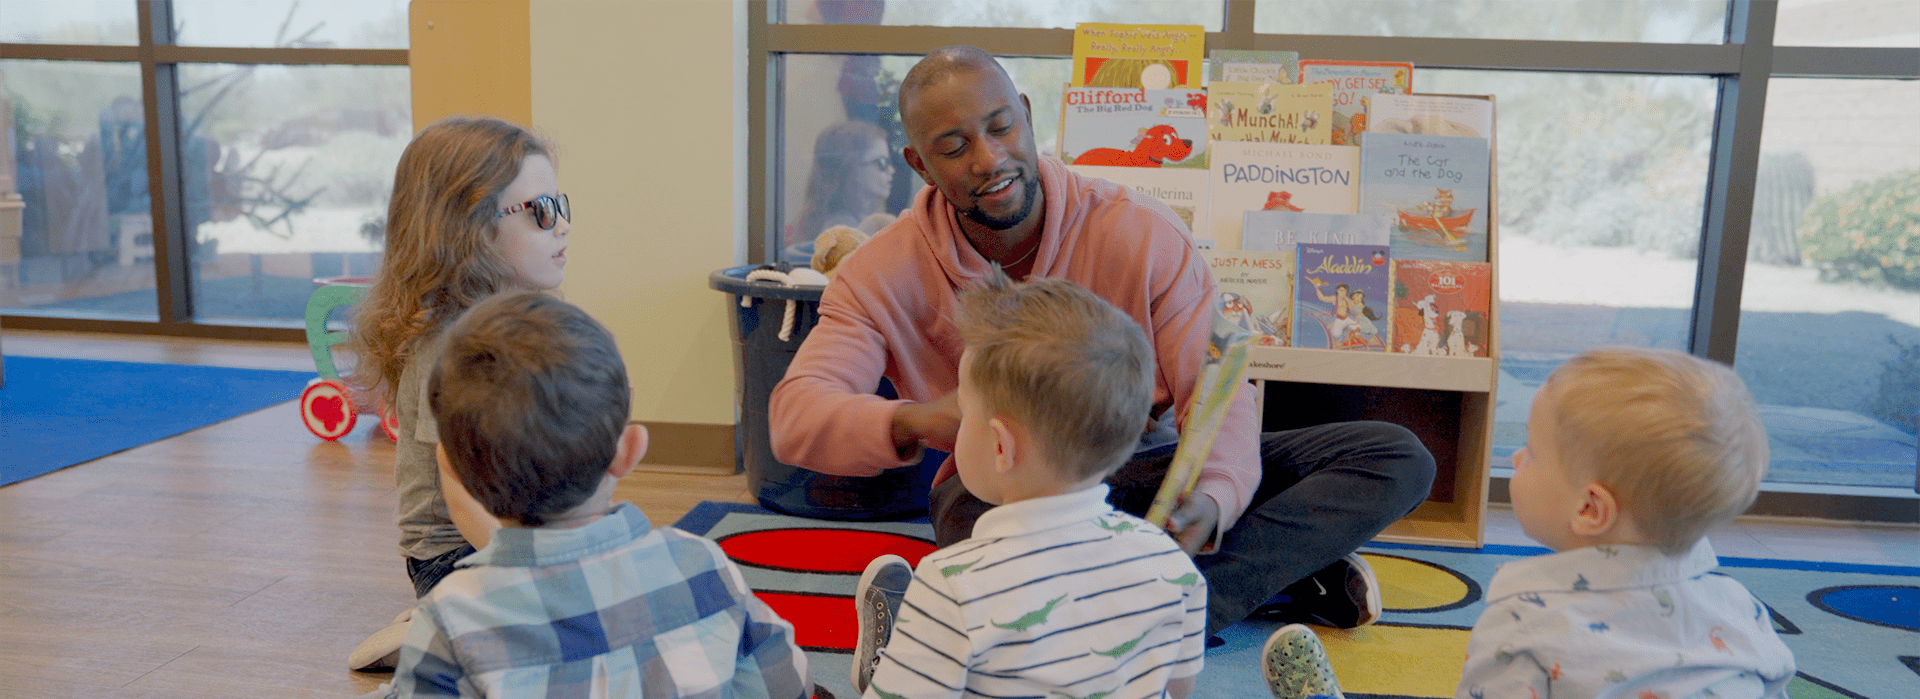 A man is surrounded by children engaged in teaching activity